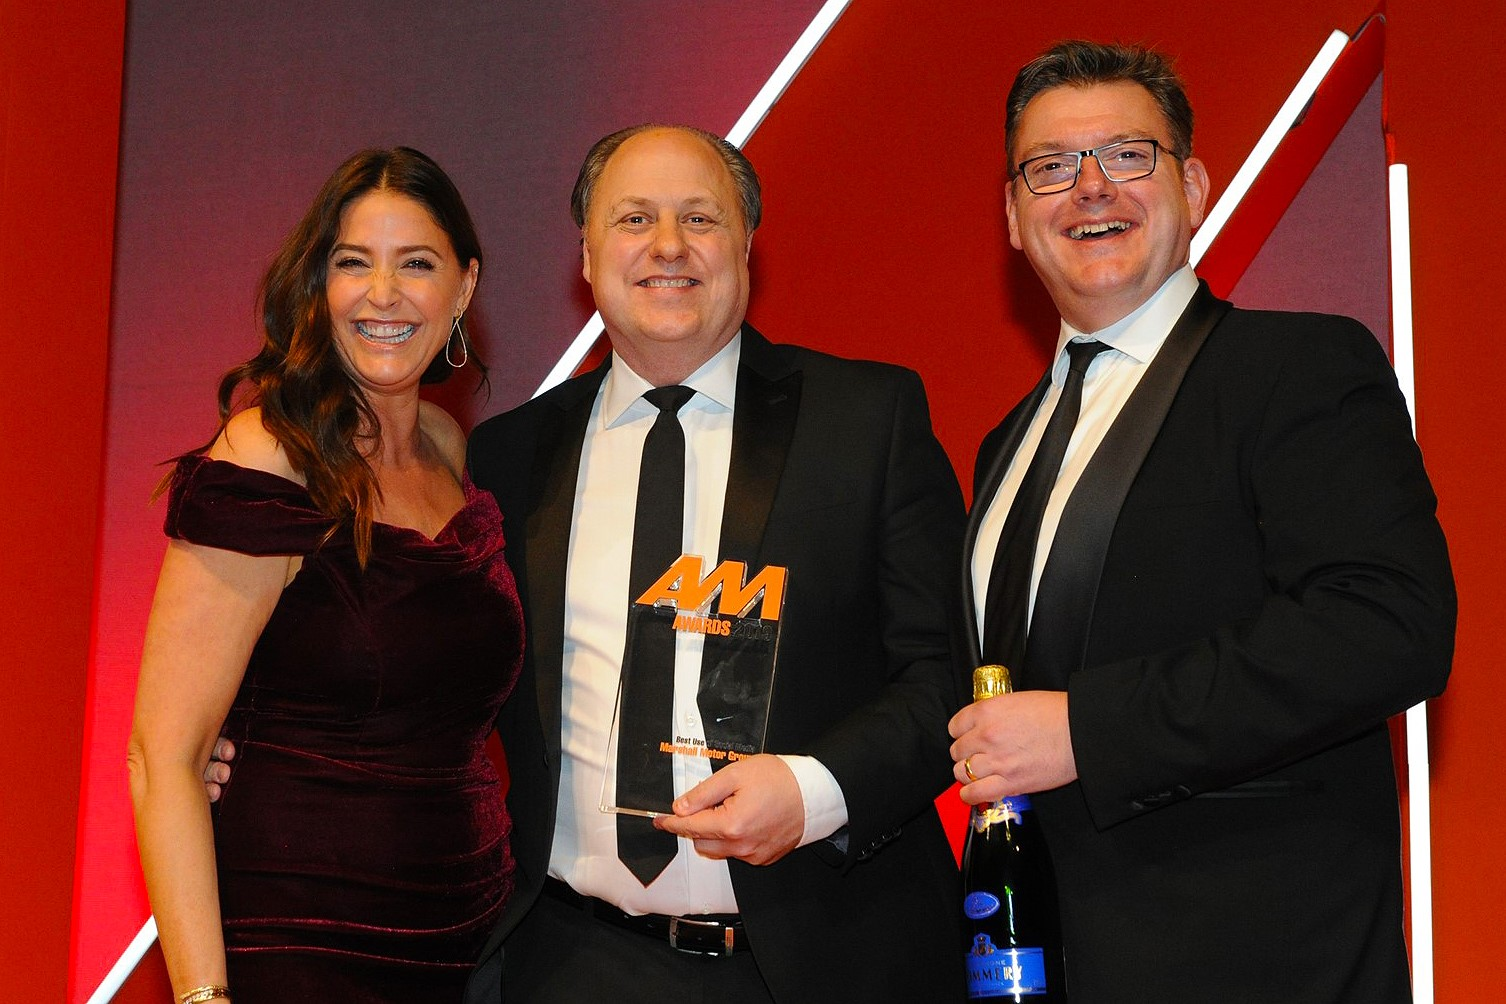 Philip J Deacon, head of marketing, Marshall Motor  Group, accepts the award from Jeremy Evans,  managing director, Marketing Delivery, right